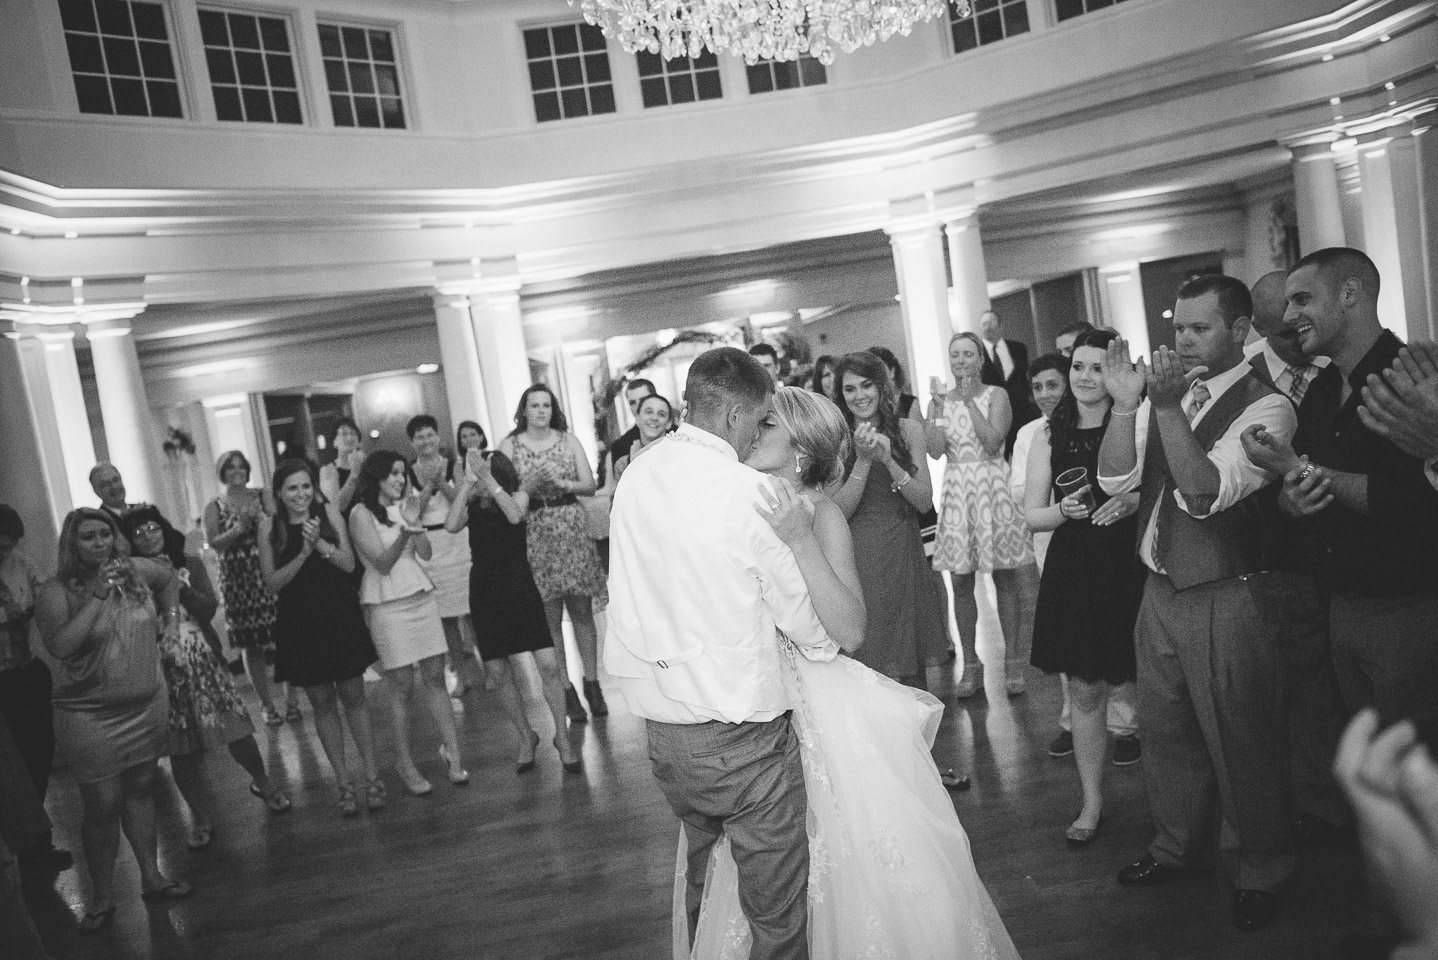 NH Wedding Photography: bride and groom dancing at reception